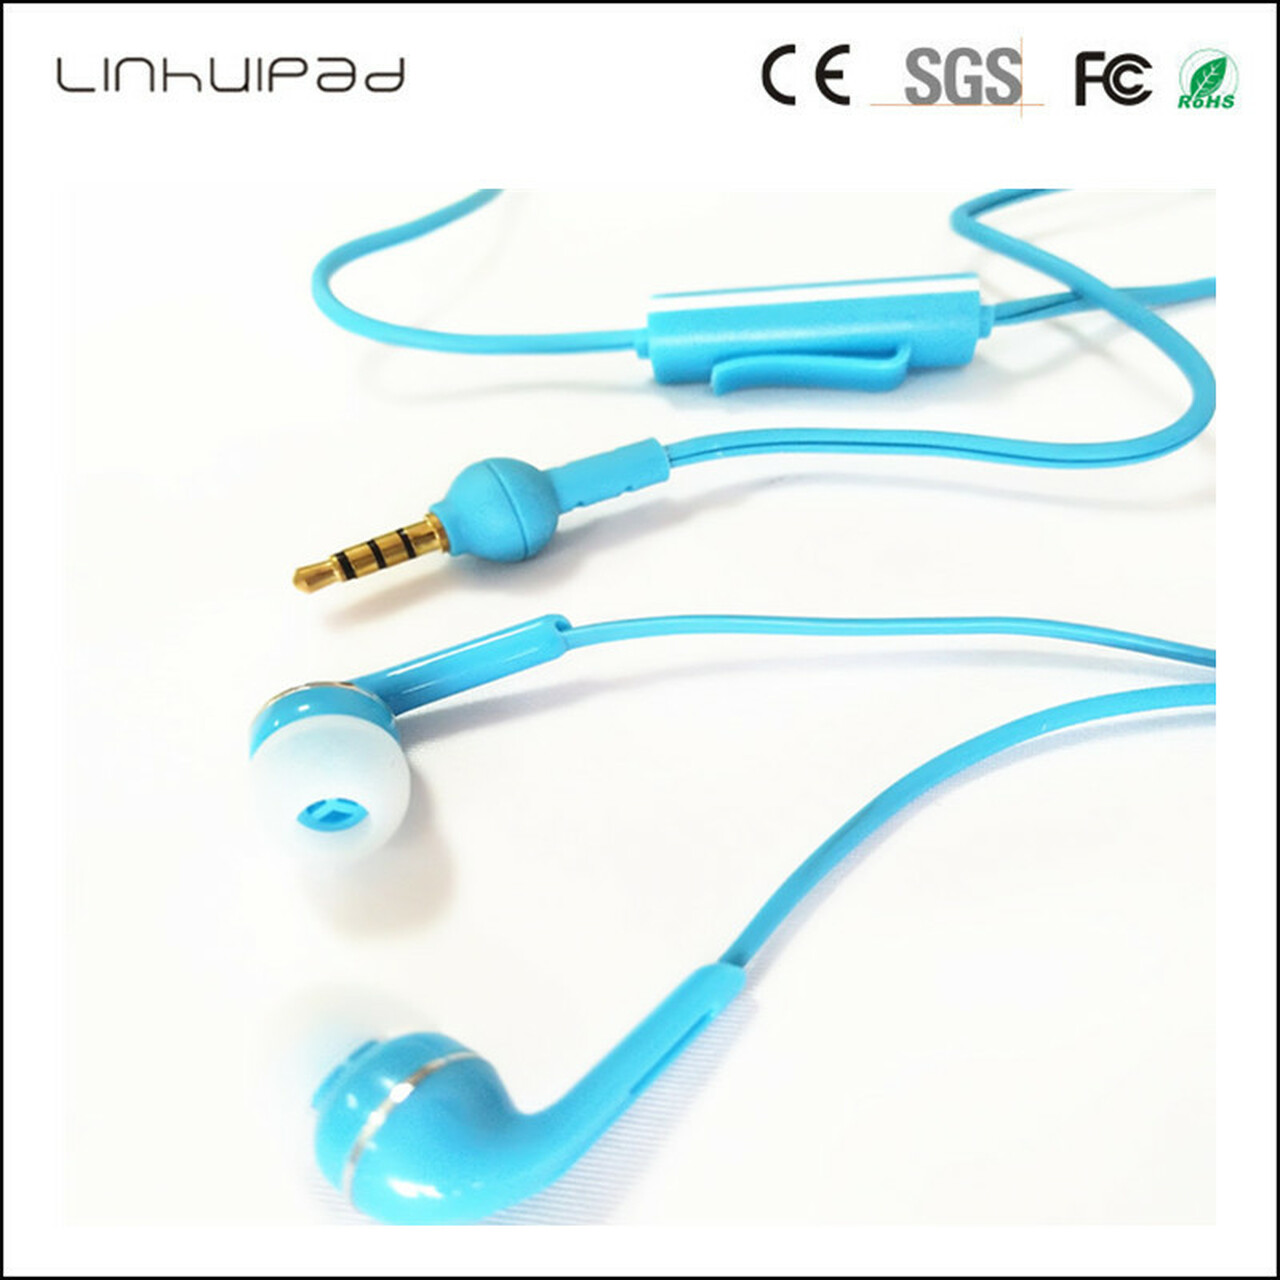 afa1d8994e3 ... Wholesale Disposable earphones cheap earbud low cost earbuds for  Theatre Museum School library